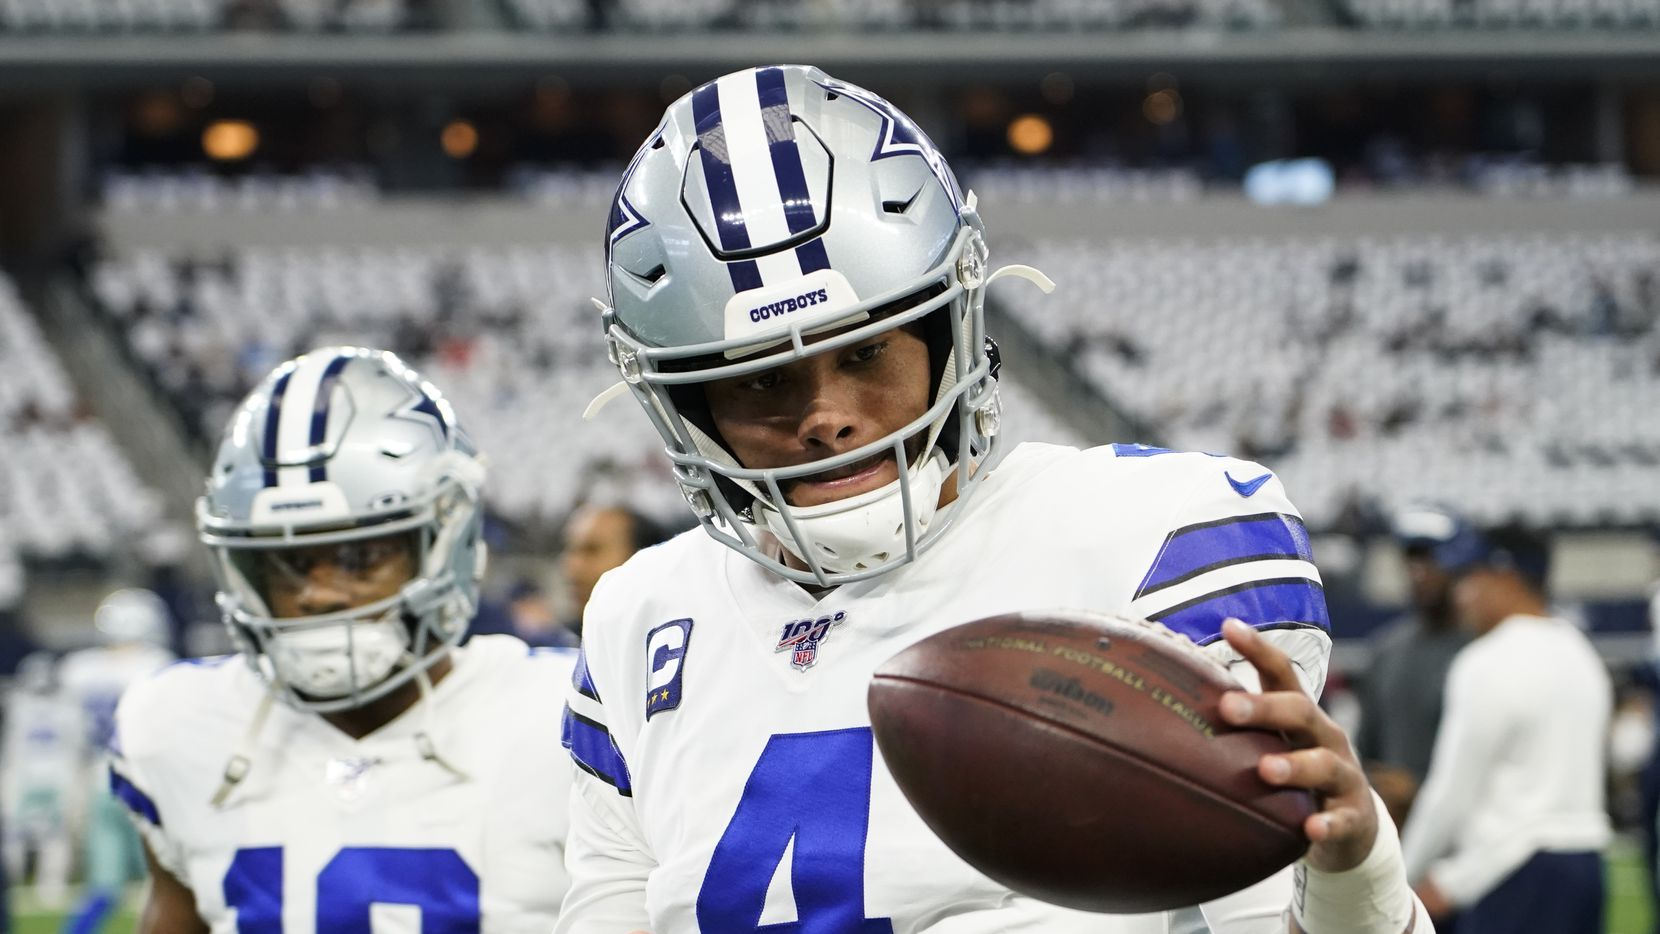 Dallas Cowboys quarterback Dak Prescott warms up before an NFL football game against the Washington Redskins at AT&T Stadium on Sunday, Dec. 29, 2019, in Arlington.